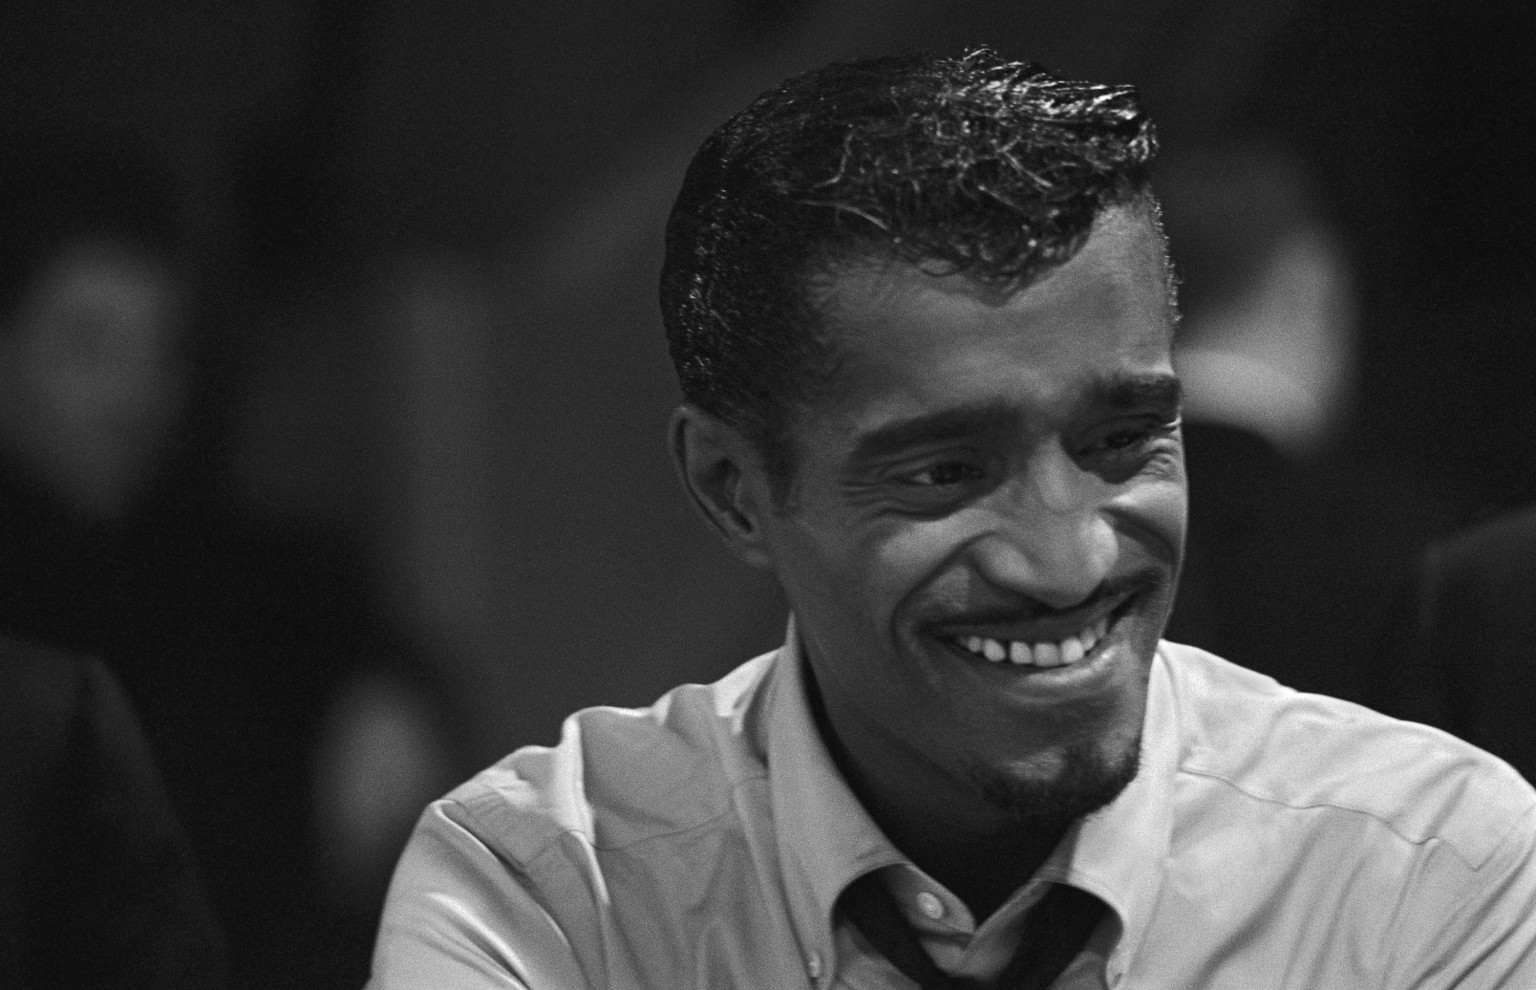 sammy davis jr dating history